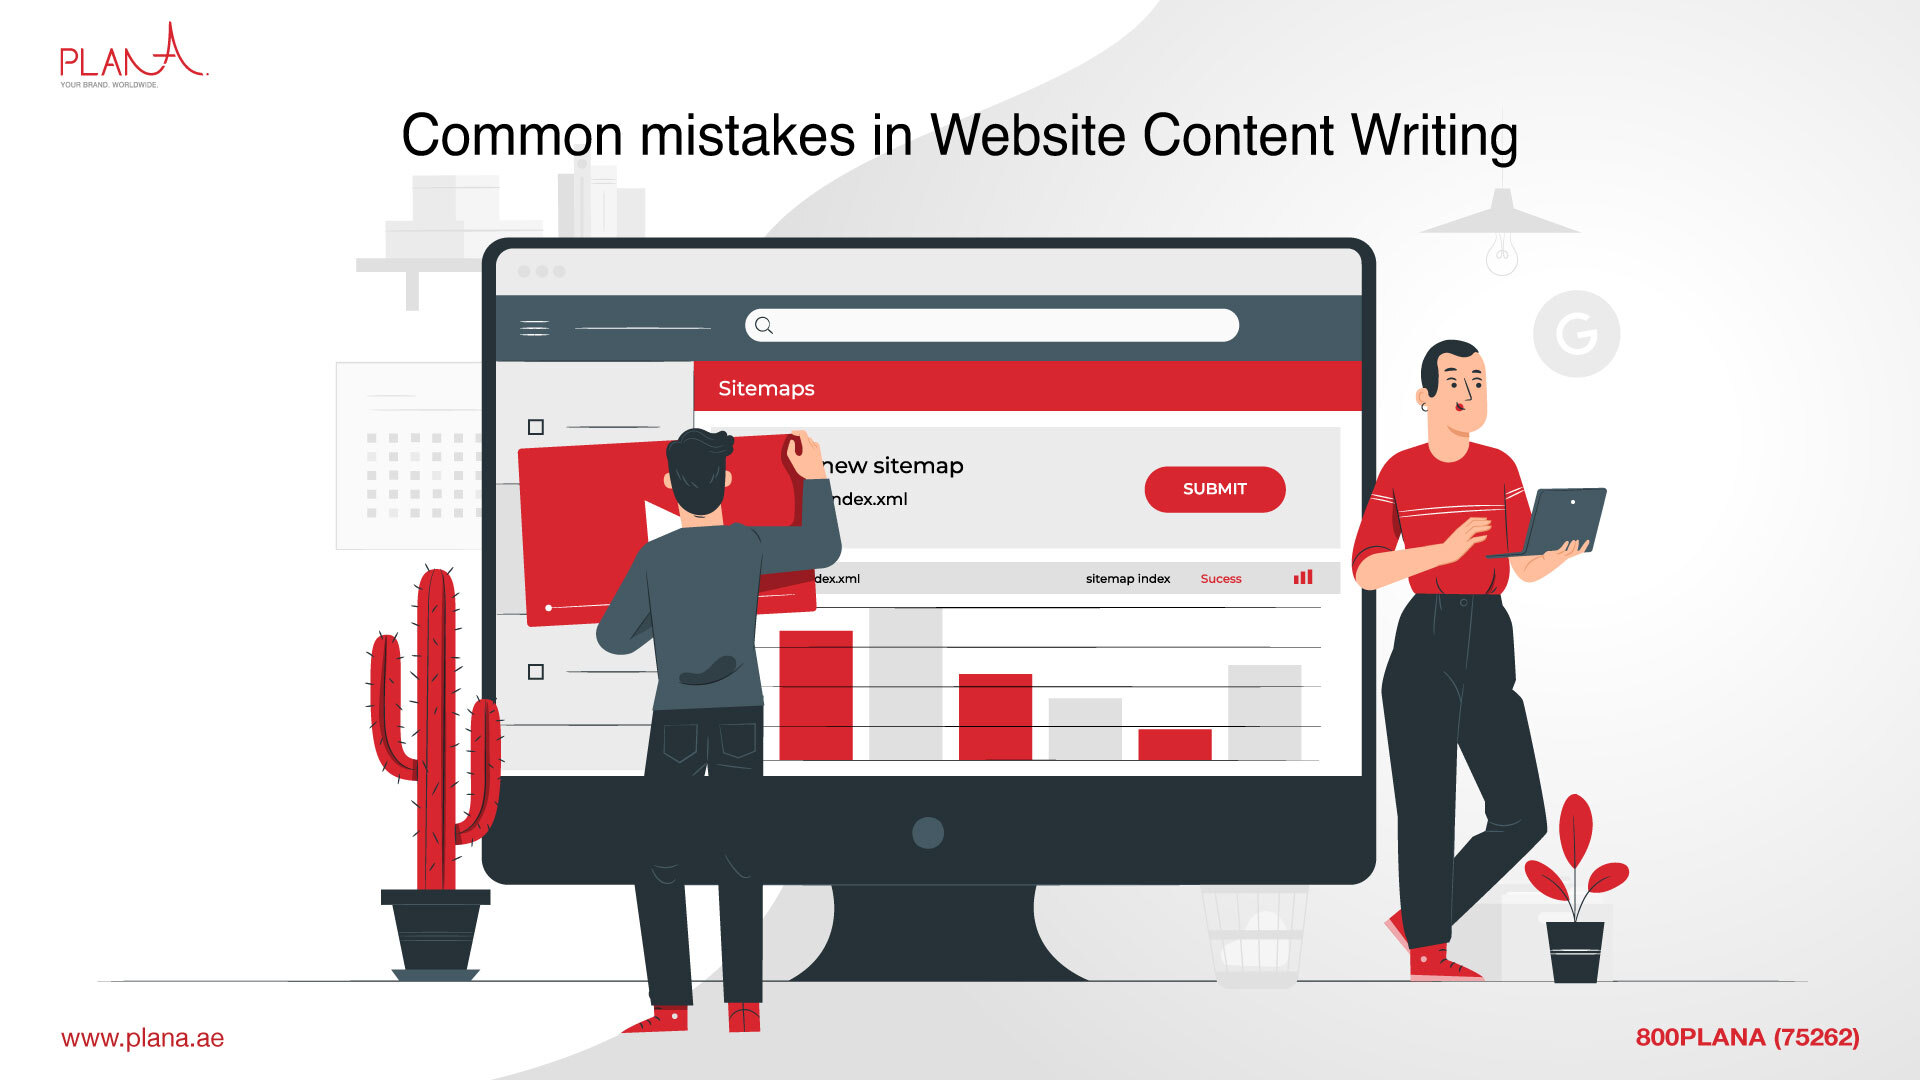 What Are the Common Mistakes in Website Content Writing?